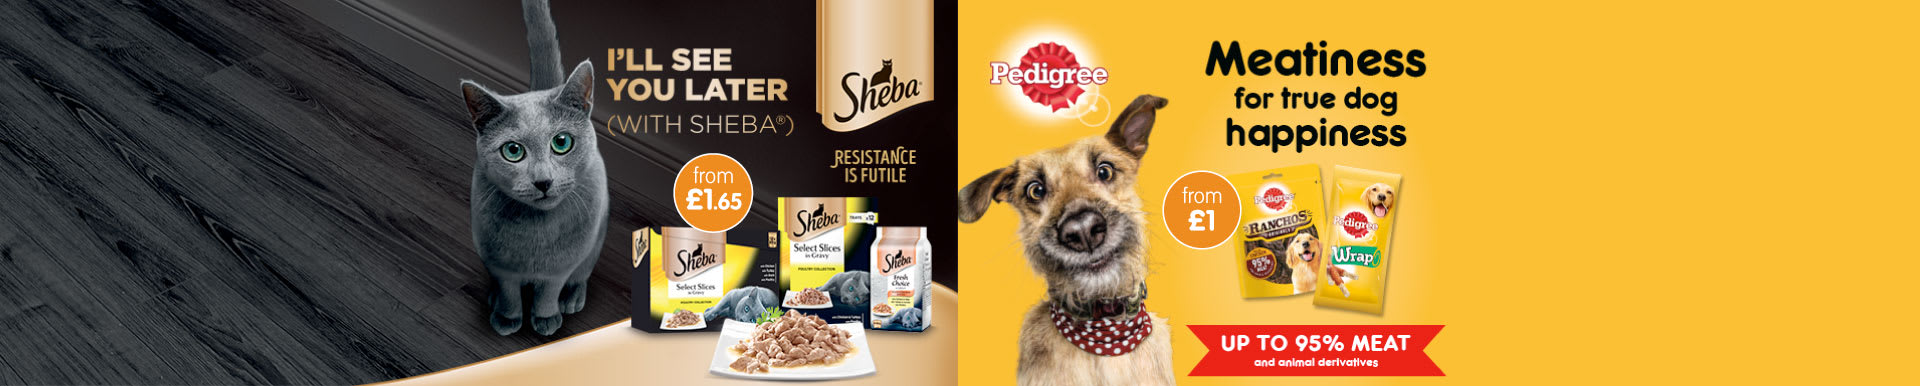 Save on Sheba and Pedigree at B&M.